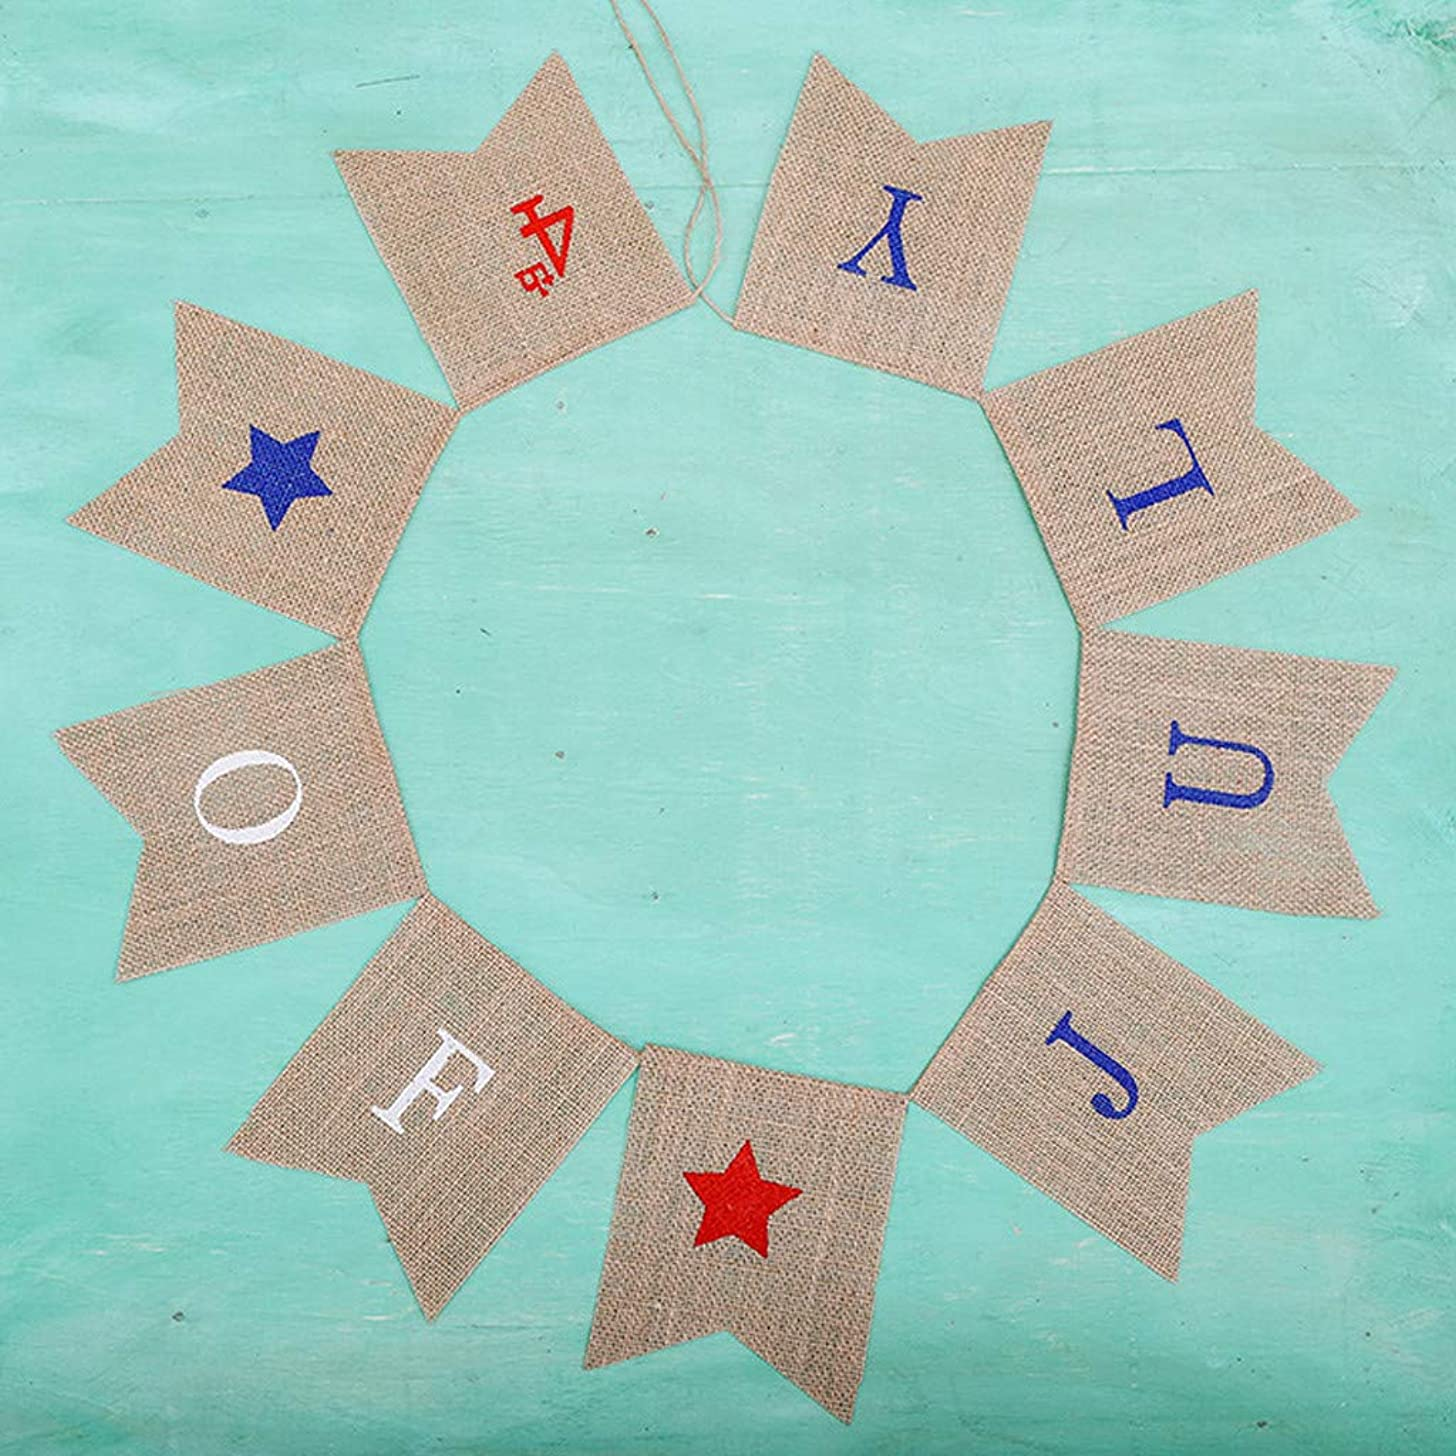 VEZARON Red White and Blue Stars Banner, Patriotic 4th of July Decorations American Independence Day Garden Flag Garland Burlap Bunting Sign (Multicolor)